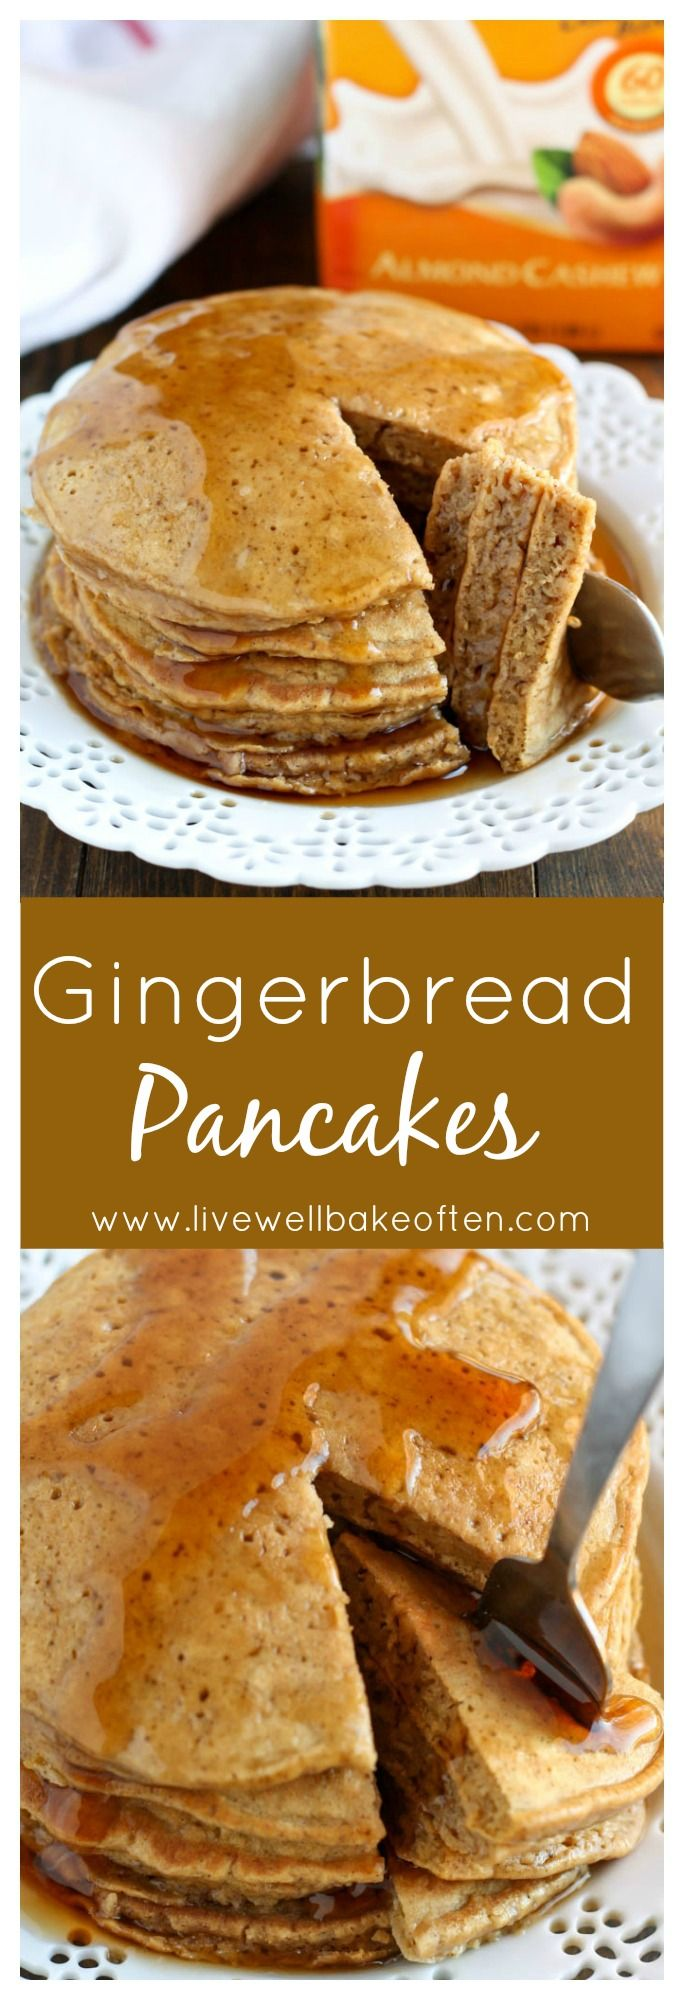 These Gingerbread Pancakes are easy to whip up and perfect for breakfast during the holiday season. Serve these warm with a little maple syrup for a treat that everyone will love!